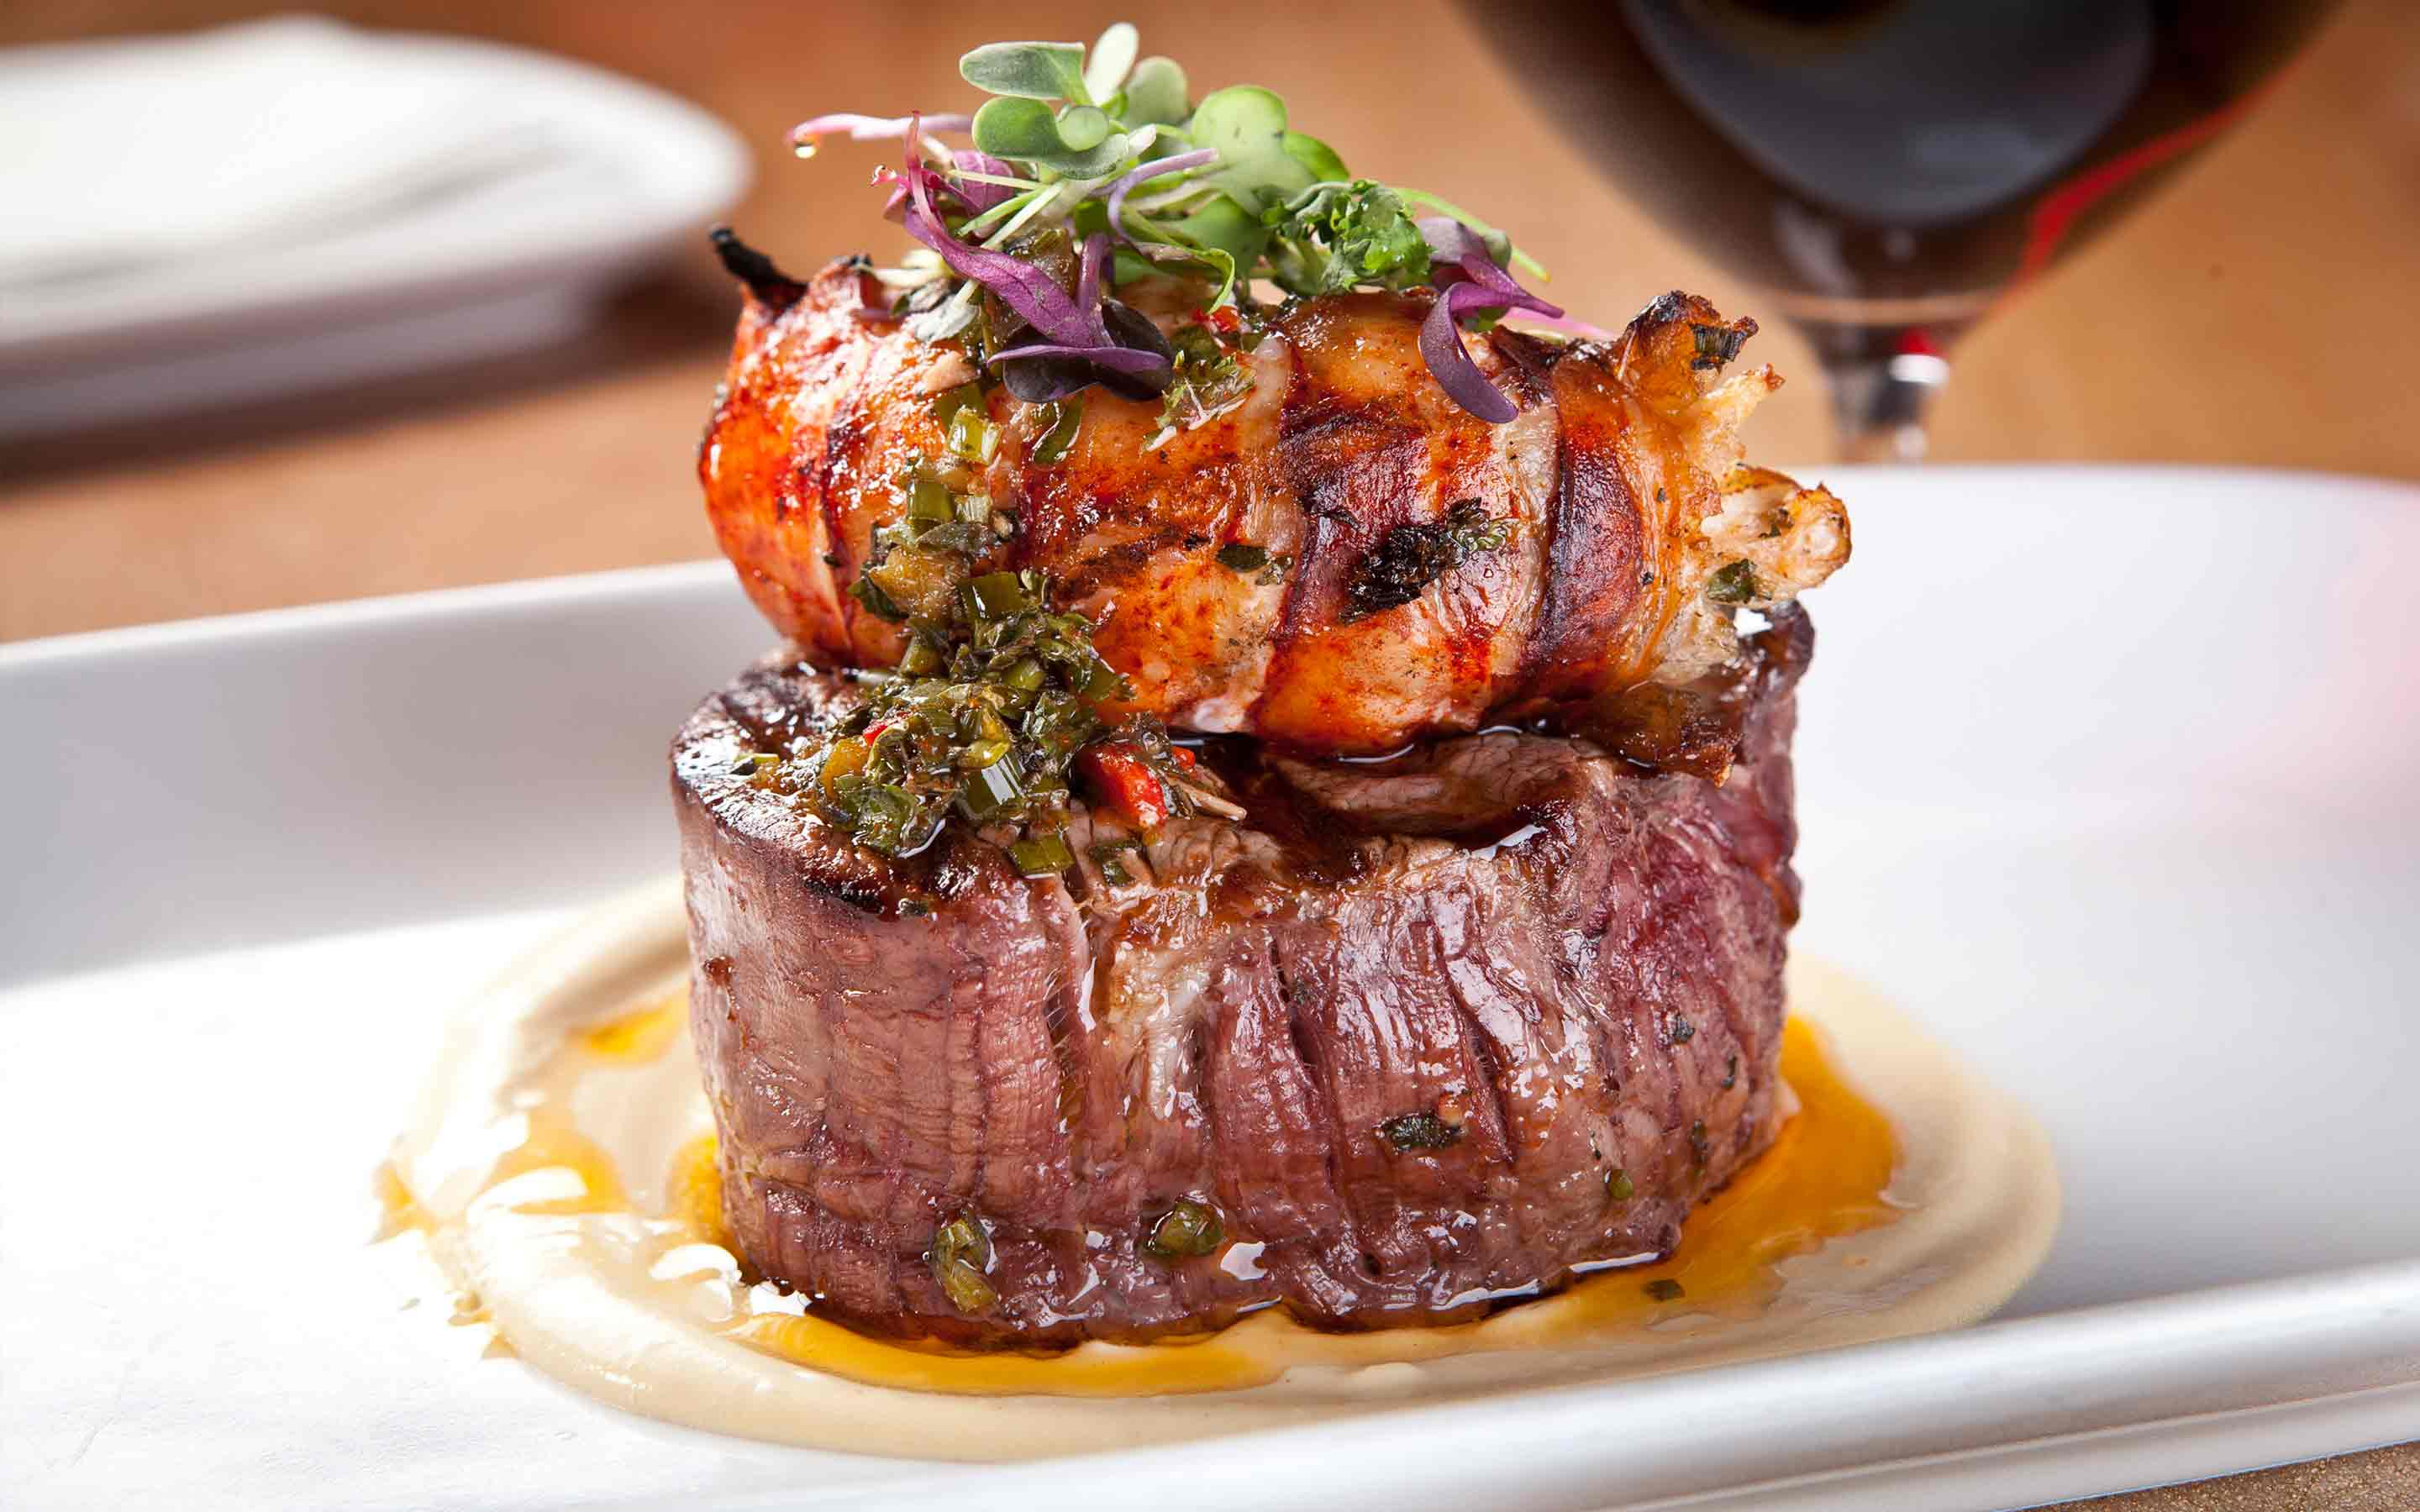 Surf & Turf  has Beef Filet, Lobster Tail, and Chimichurri Vinaigrette at Crush.